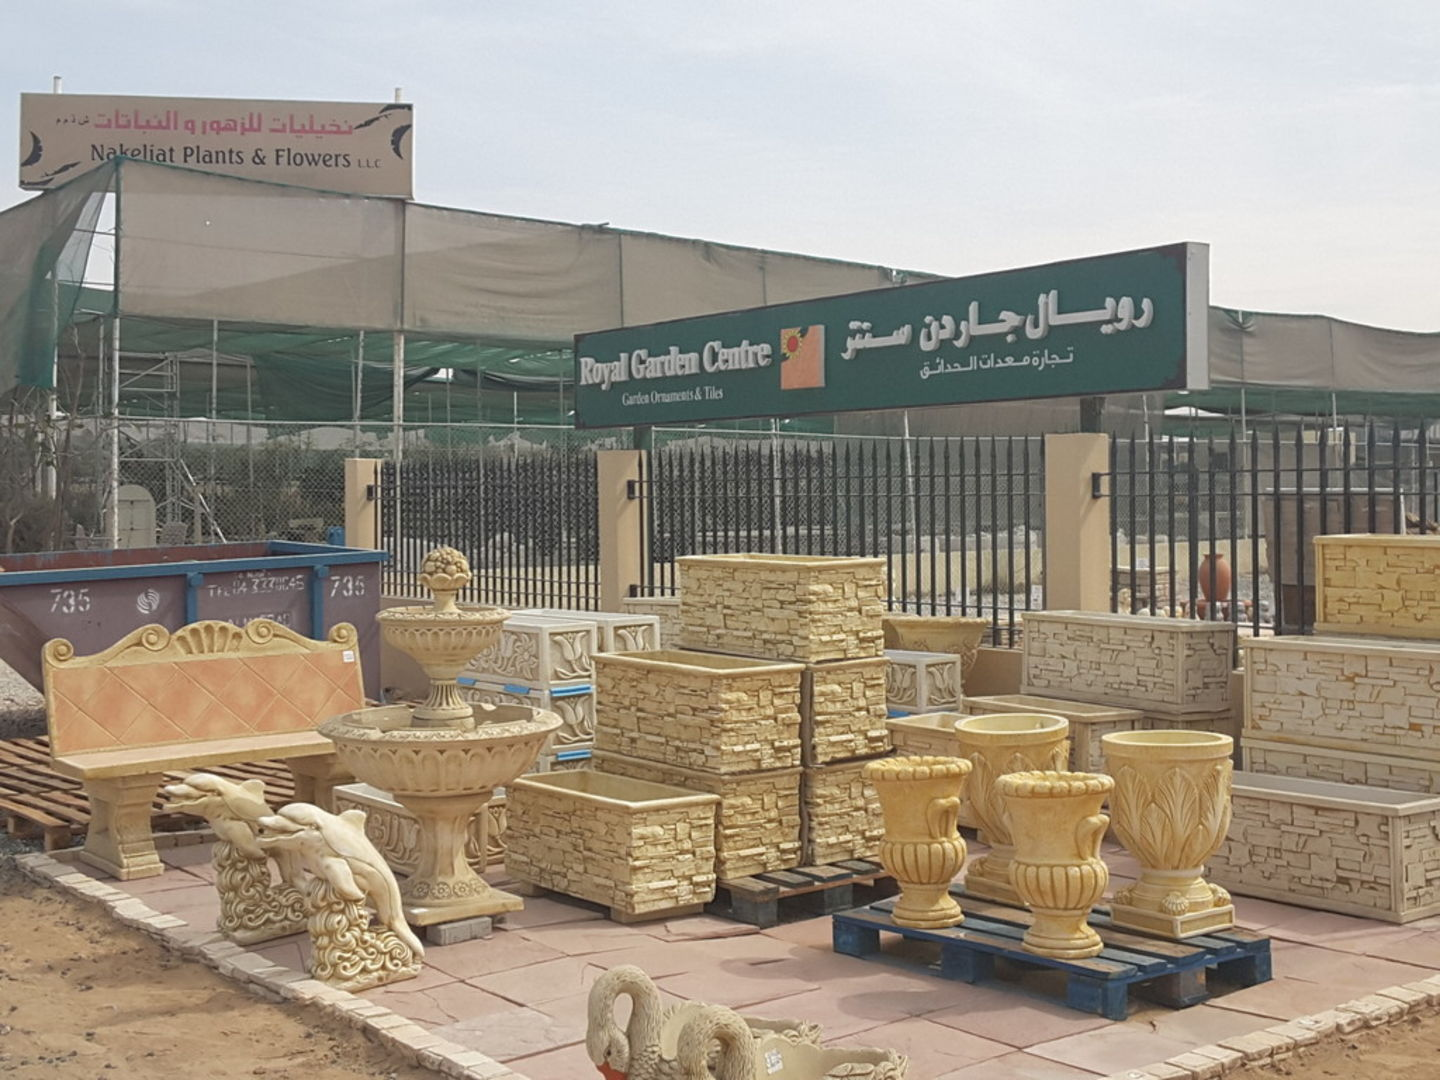 Royal Garden Centre, (Furniture & Décor) in Warsan 10, Dubai